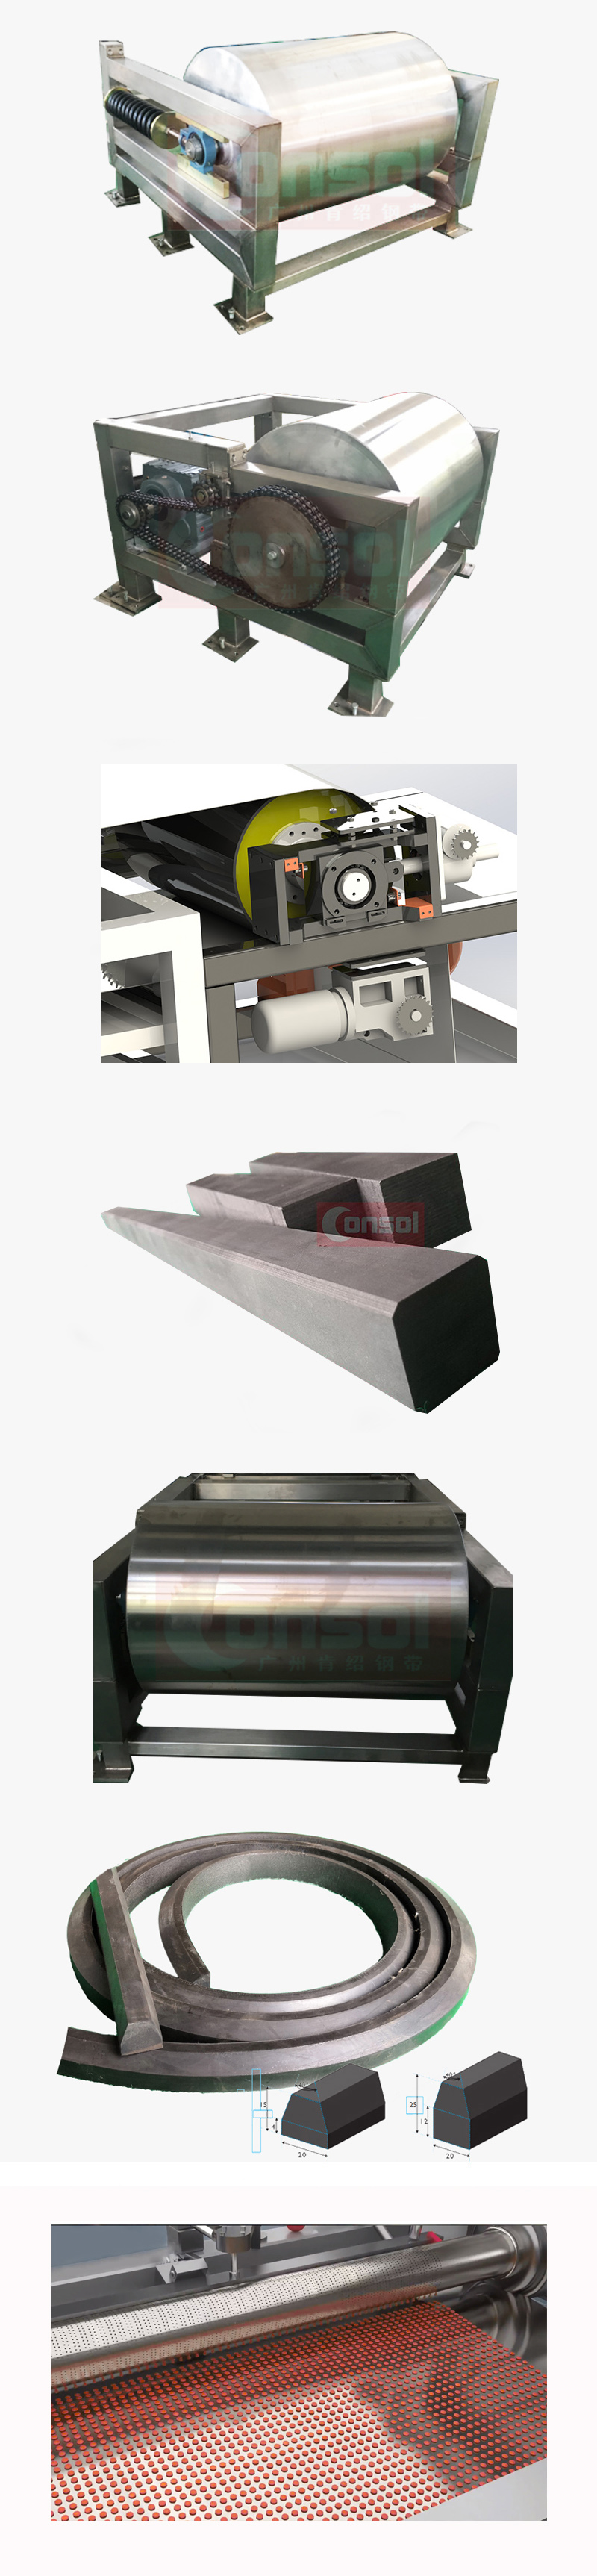 steel belt conveyor system spare parts